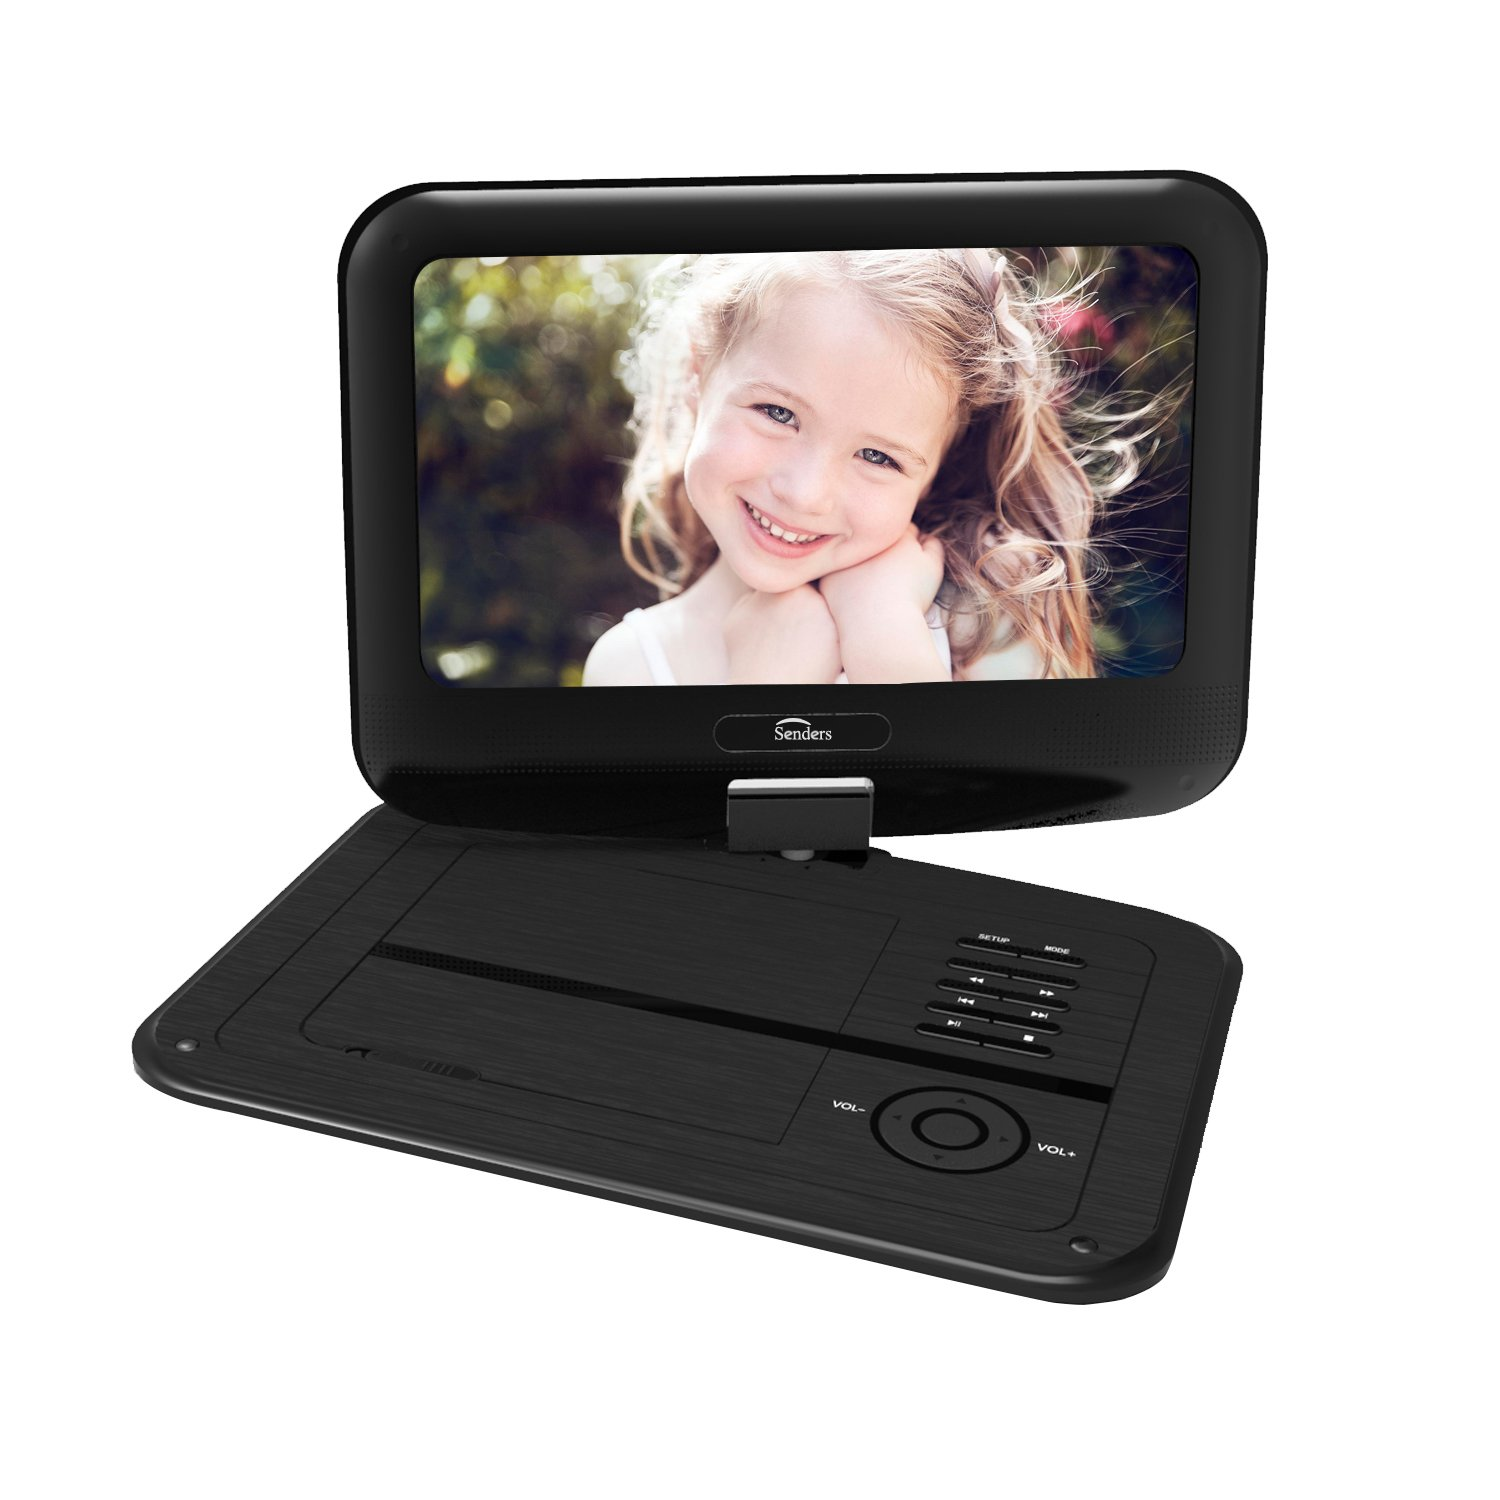 Senders 9.5 Inch Portable DVD Player with Swivel Screen,Multimedia Portable Video Player Built in Rechargeable Battery,SD Card Slot and USB Port – Black by Senders